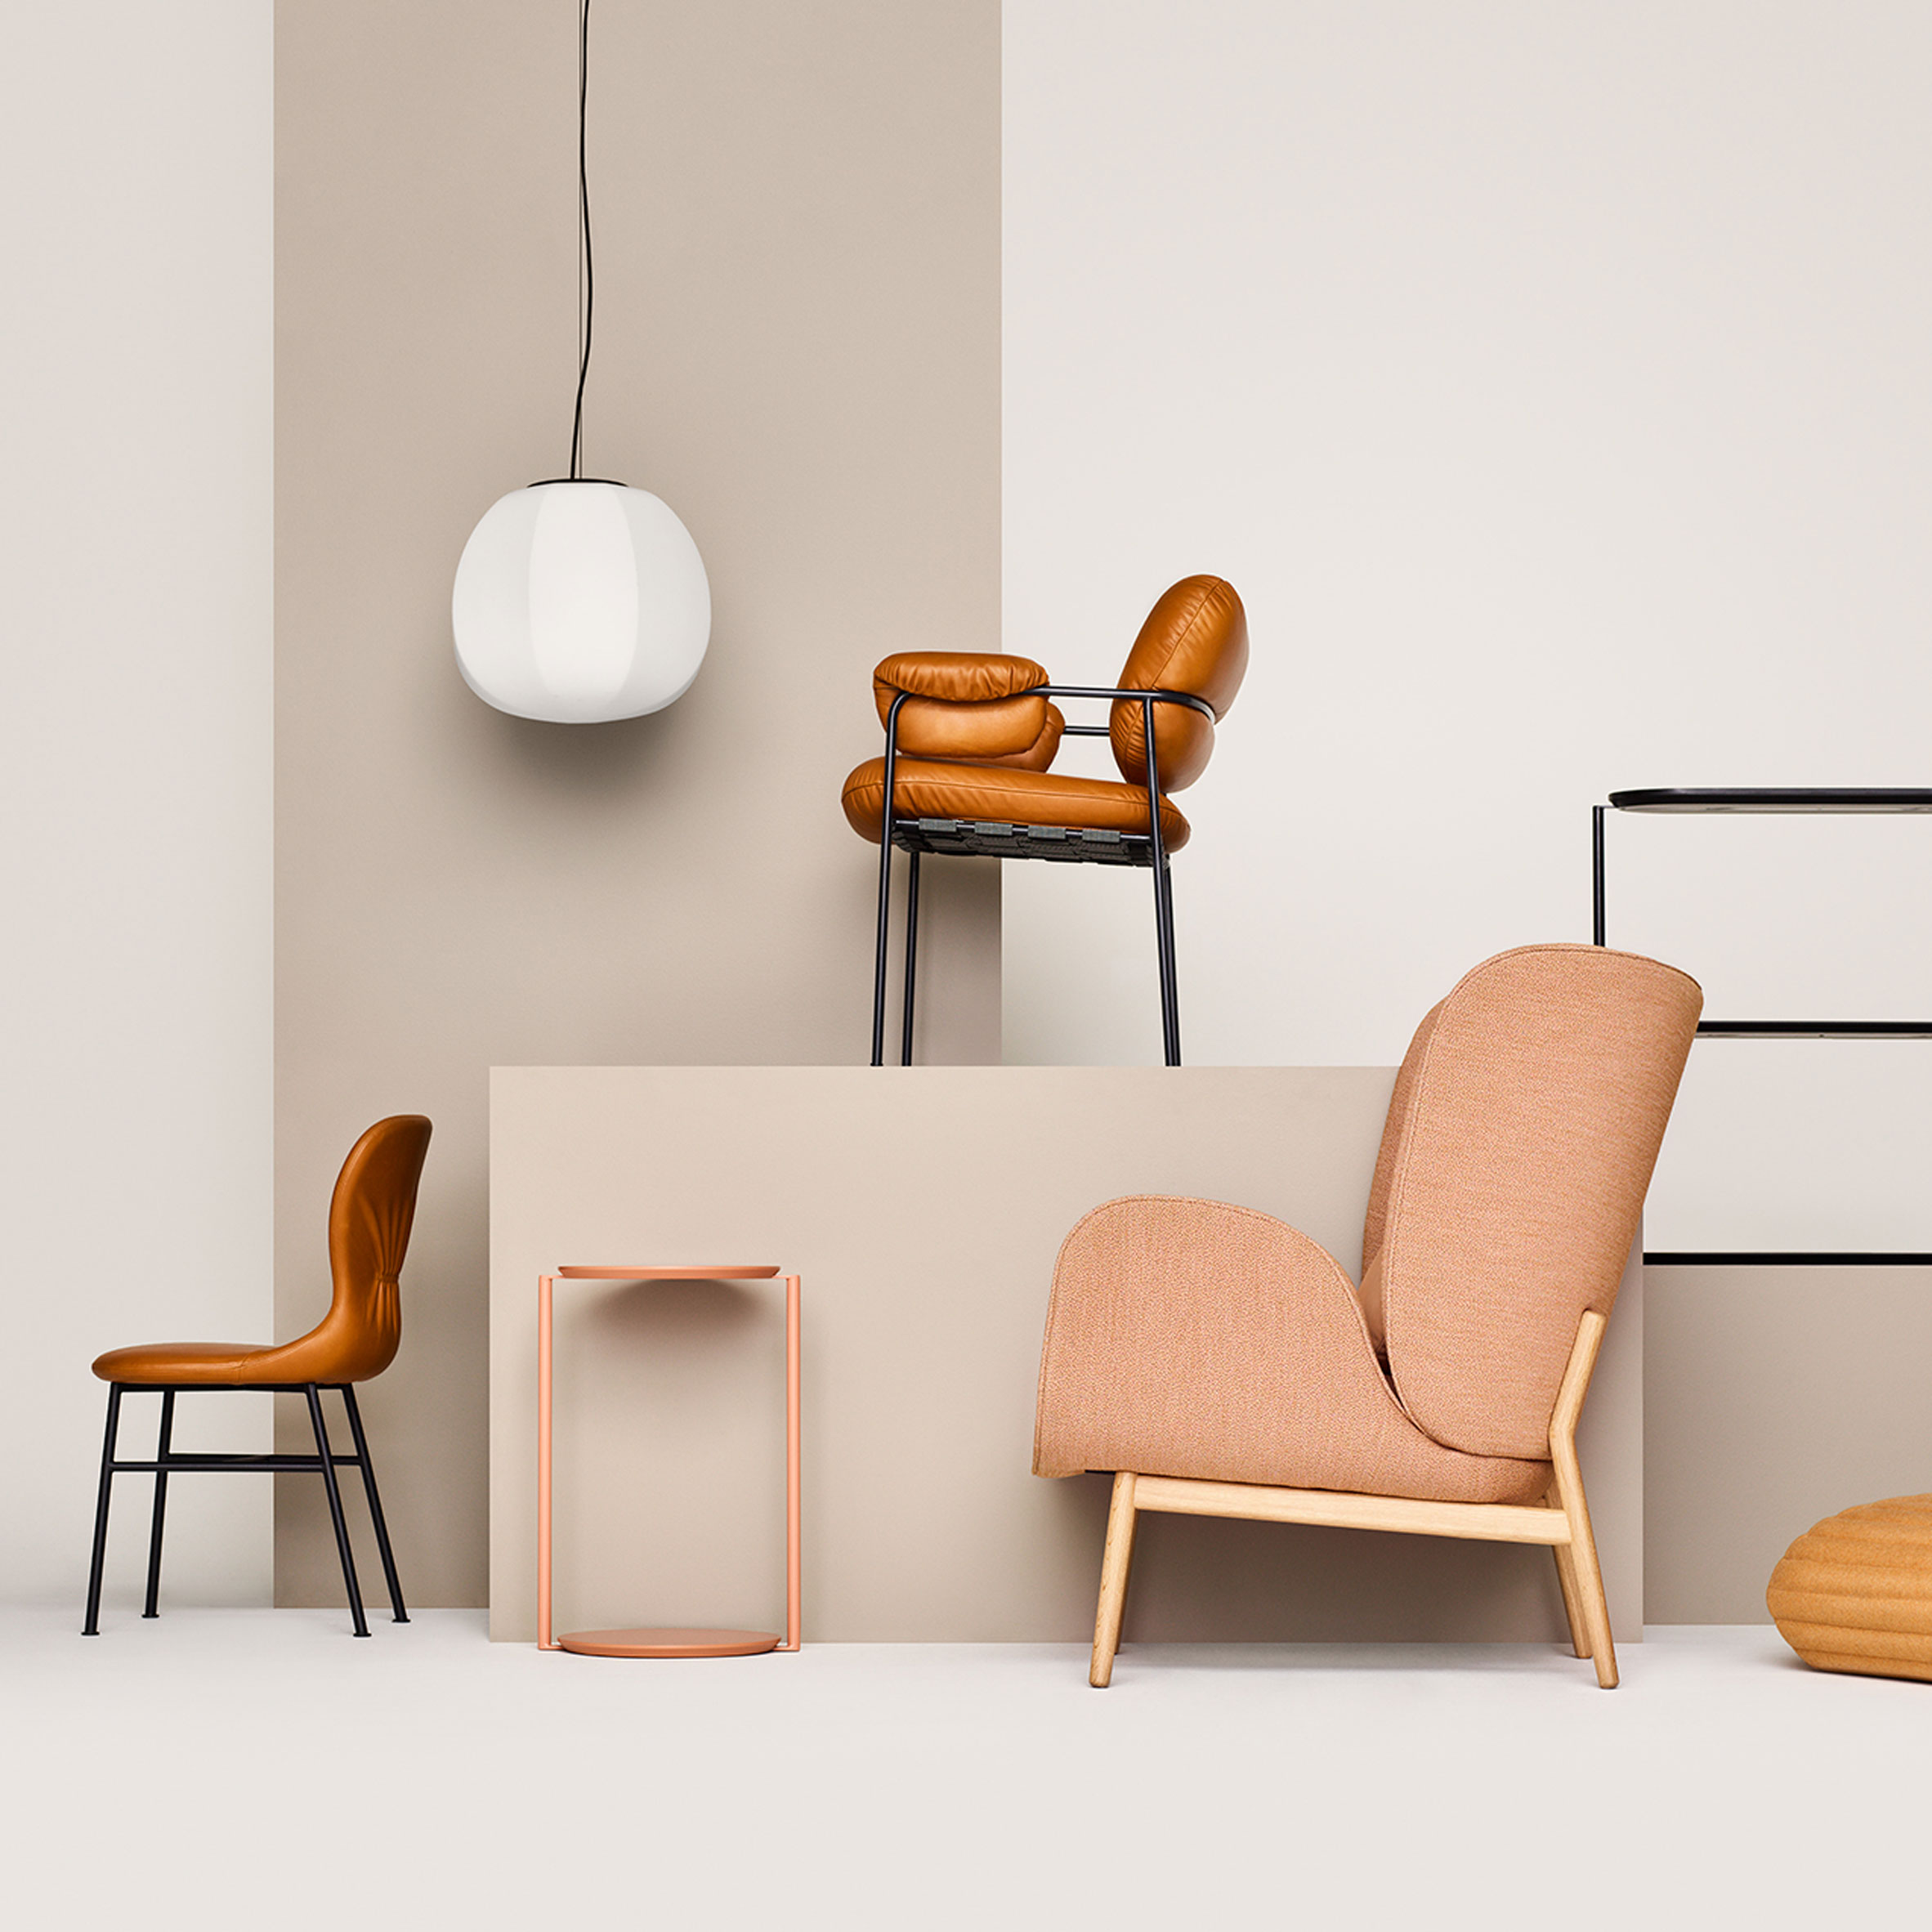 Fogia launches furniture collection that pays homage to the 1970s